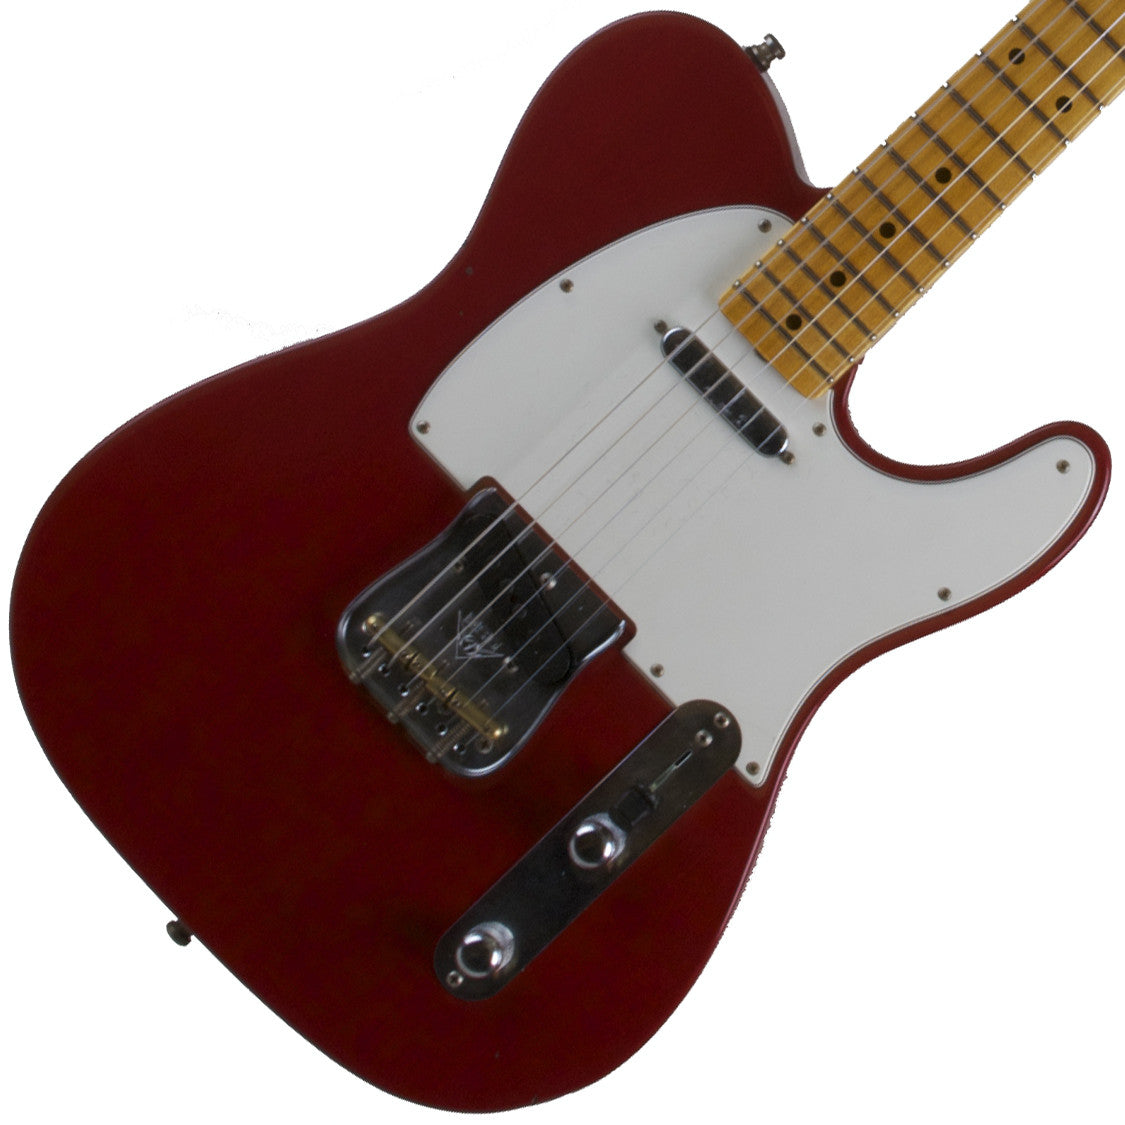 2015 Fender Custom Collection PostModern Journeyman Telecaster MN, Dakota Red - Garrett Park Guitars  - 1